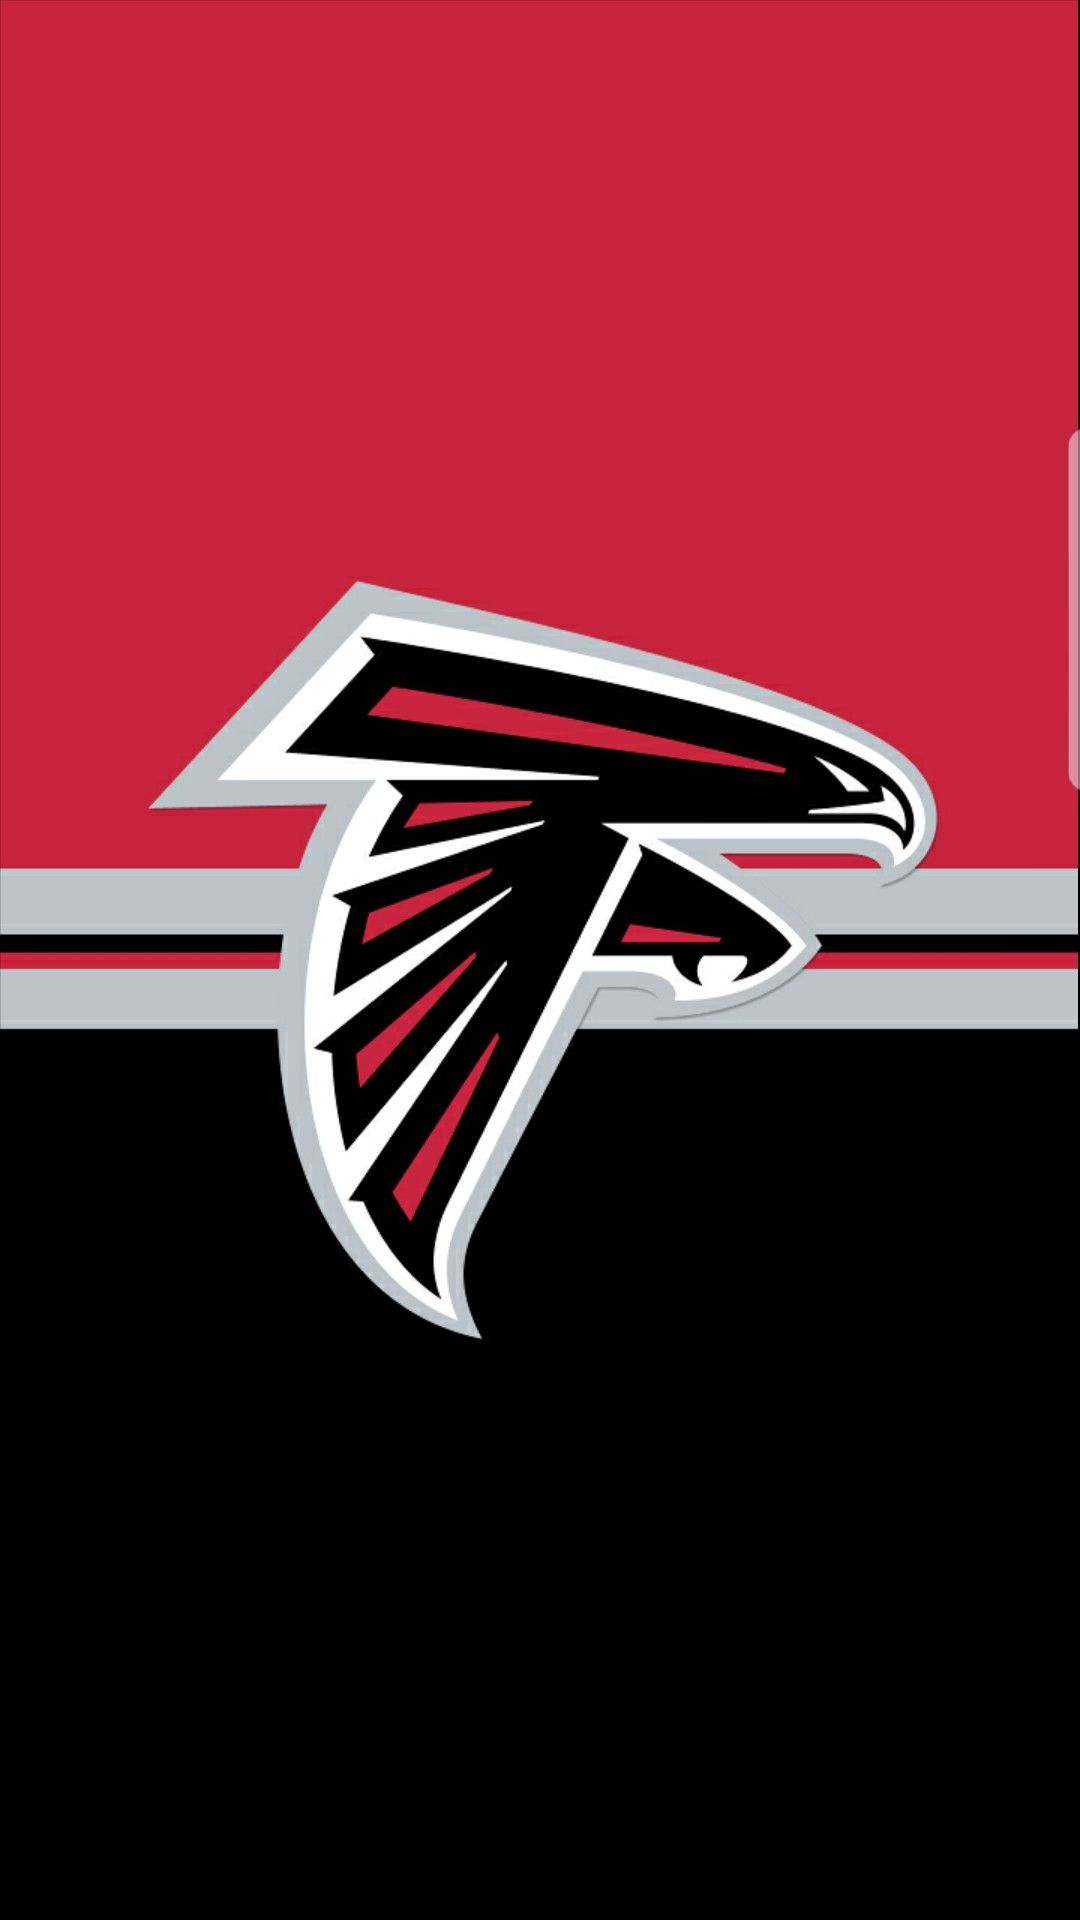 Pin By Archie Douglas On Sportz Wallpaperz Atlanta Falcons Wallpaper Atlanta Falcons Locked Wallpaper